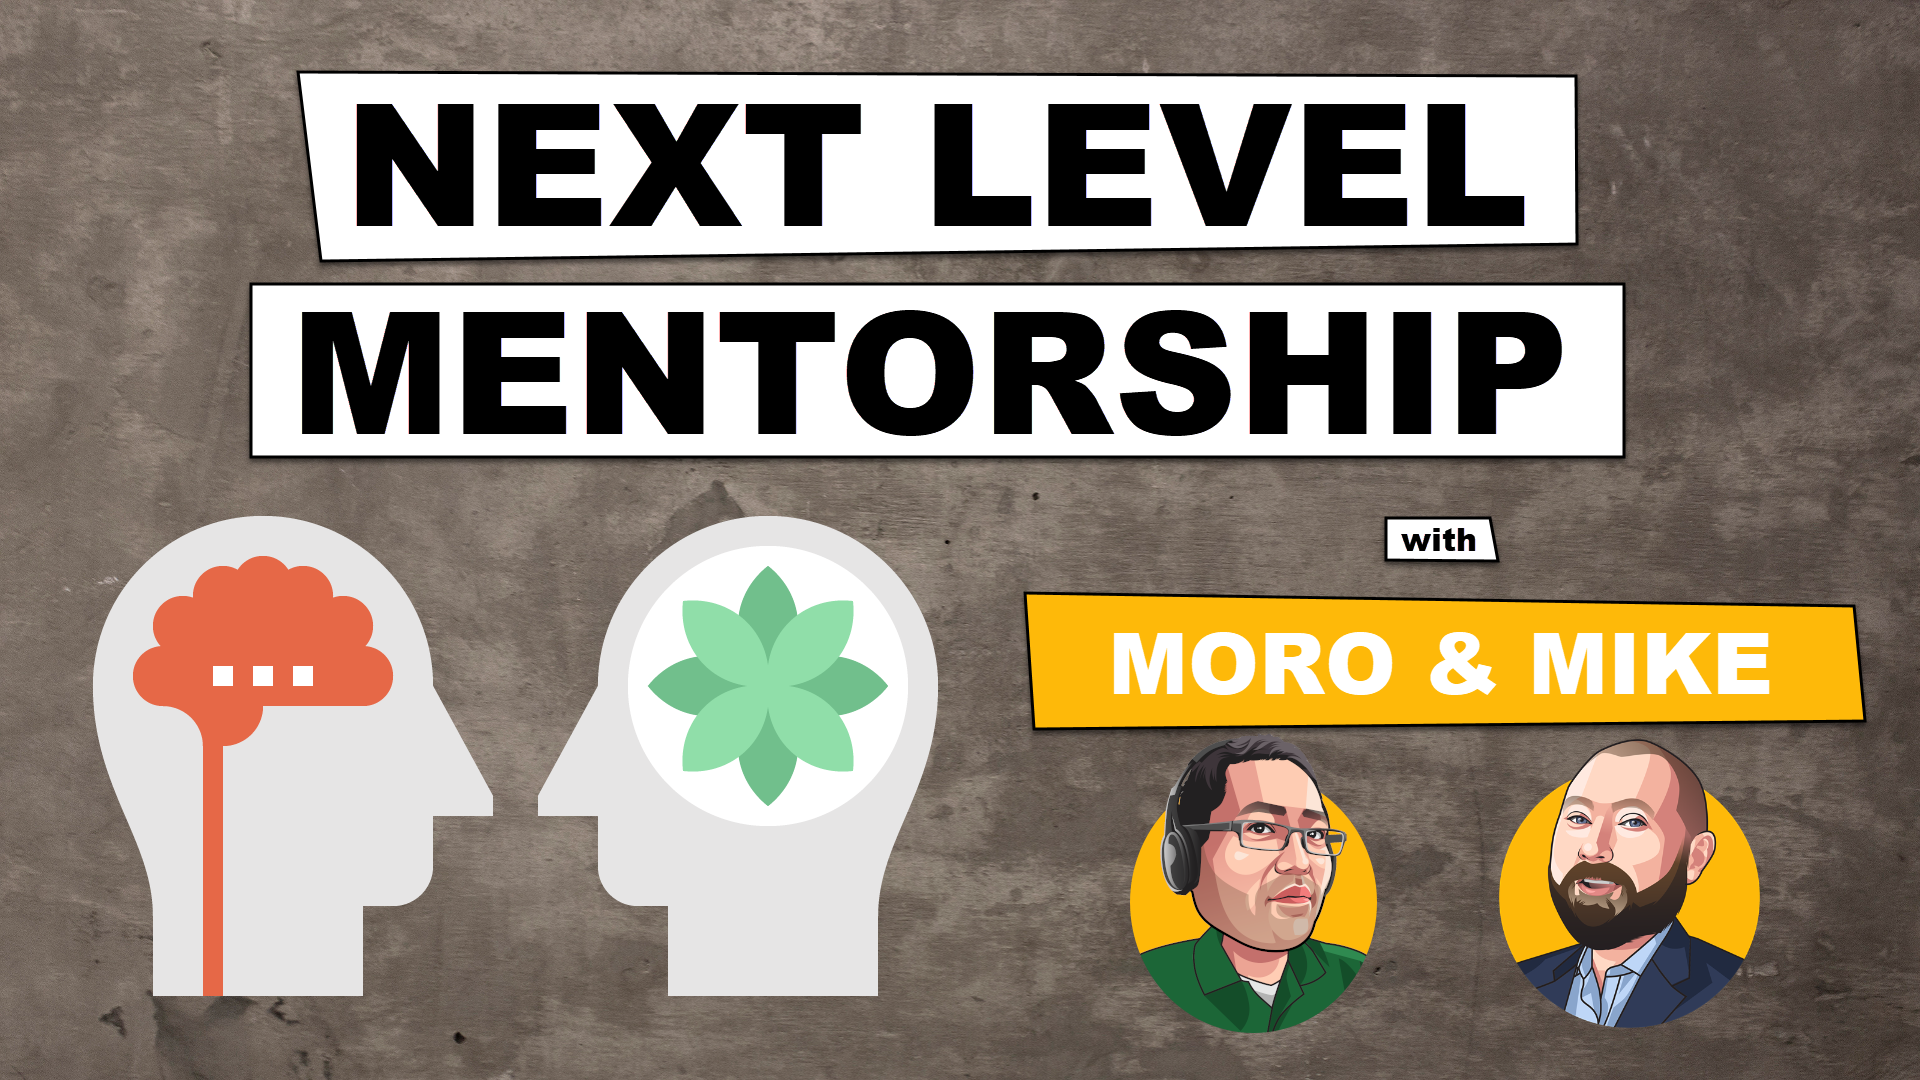 Next Level Mentorship